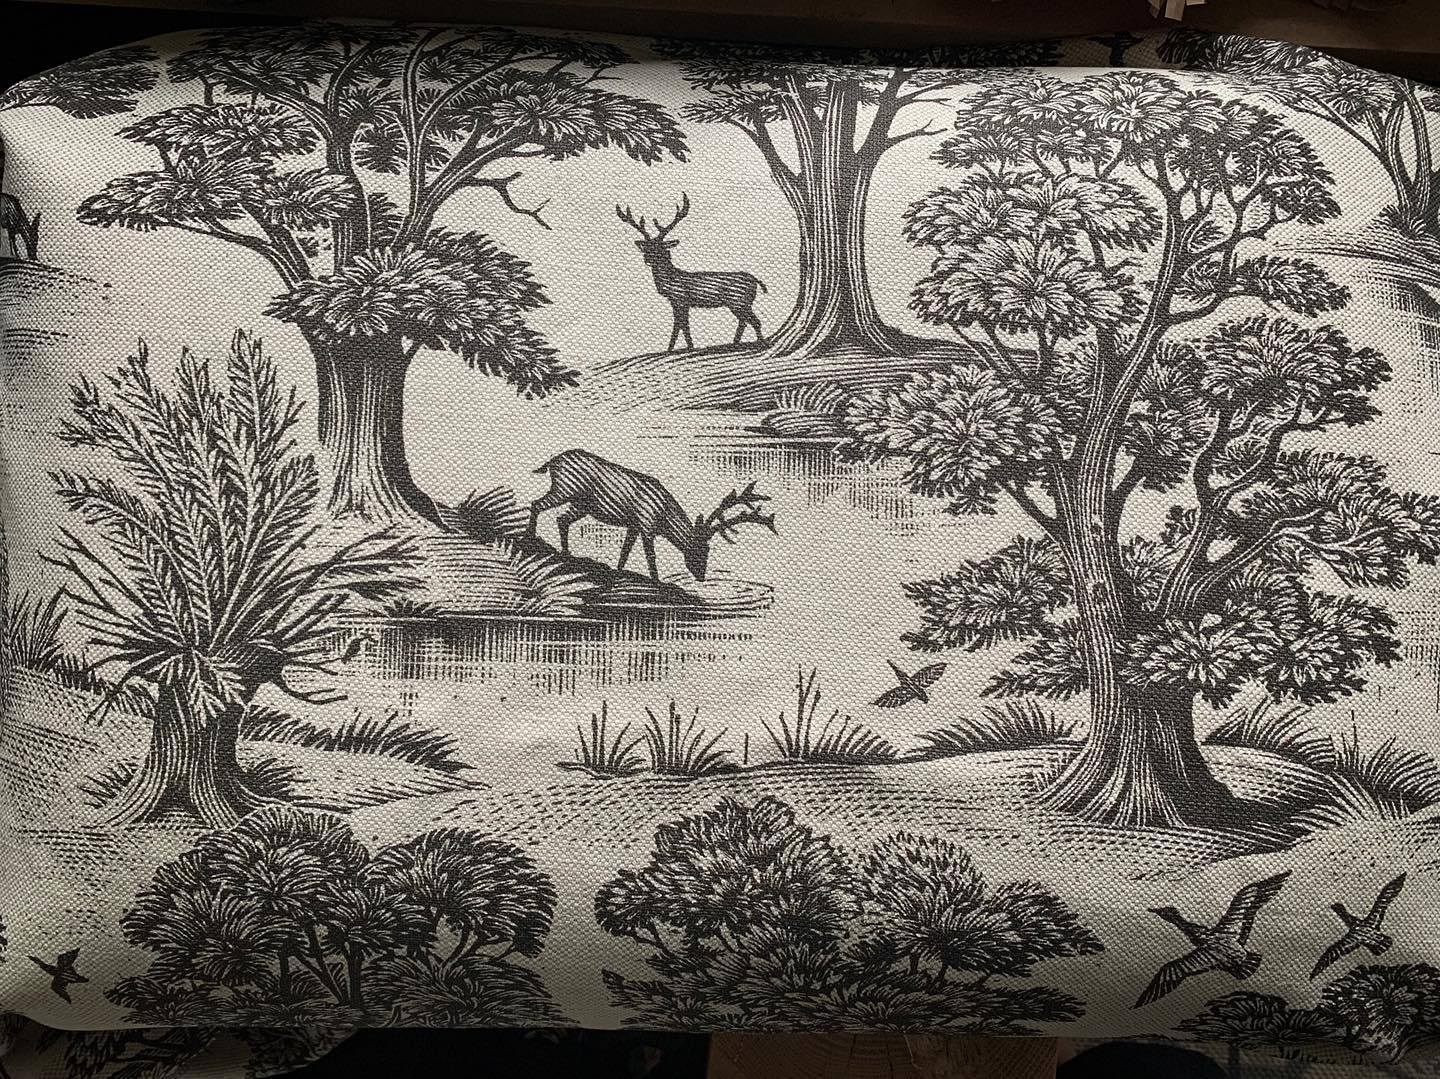 Absolutely love this @lewisandwood fabric! It's very very special. ...#deerpark #upholstery #bespoke #homedecor #beautifulfabric #woodland #print #textiles